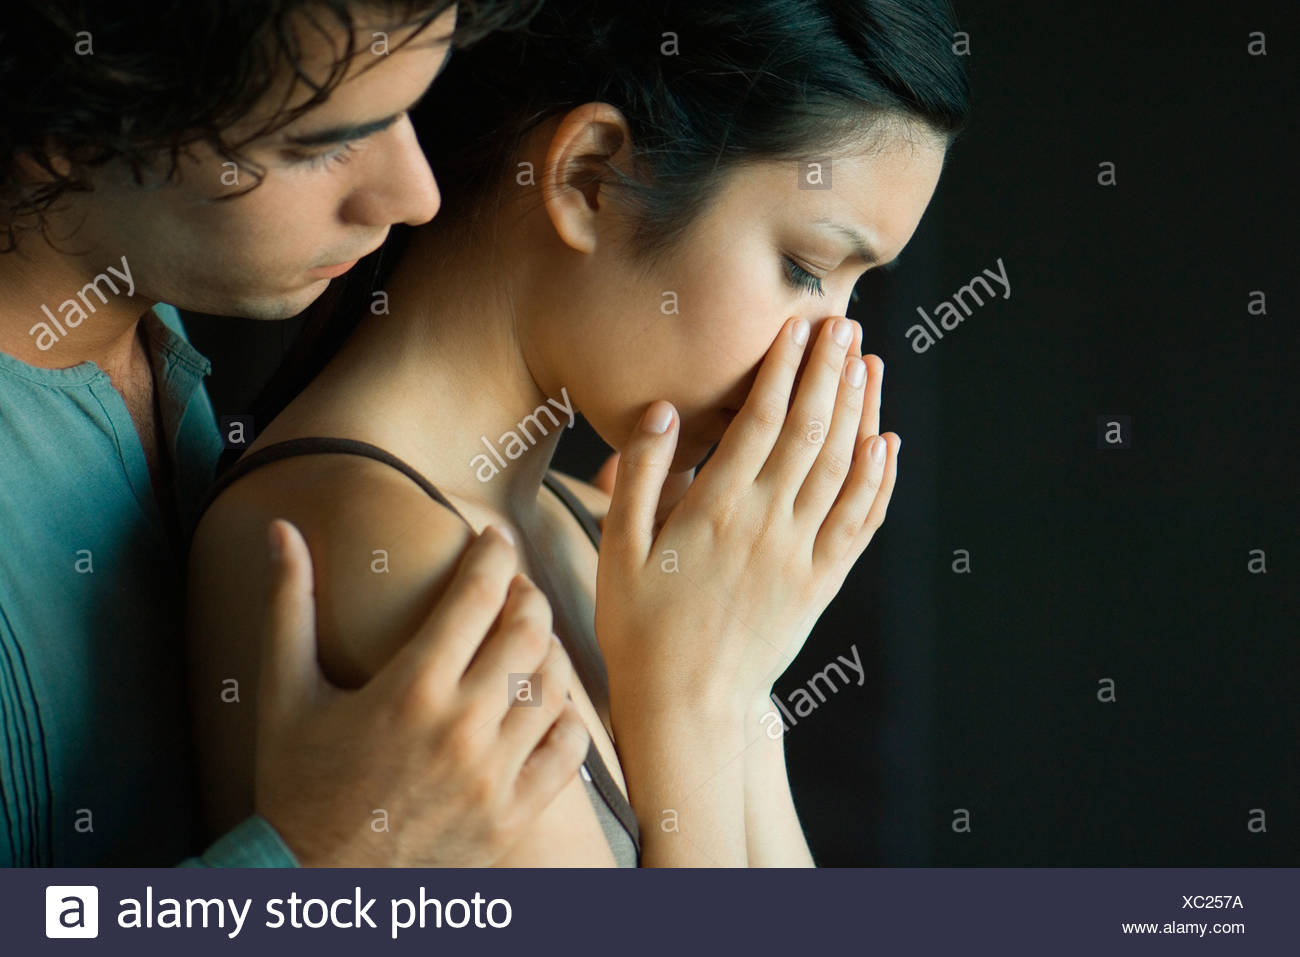 Young couple together, man consoling woman Stock Photo